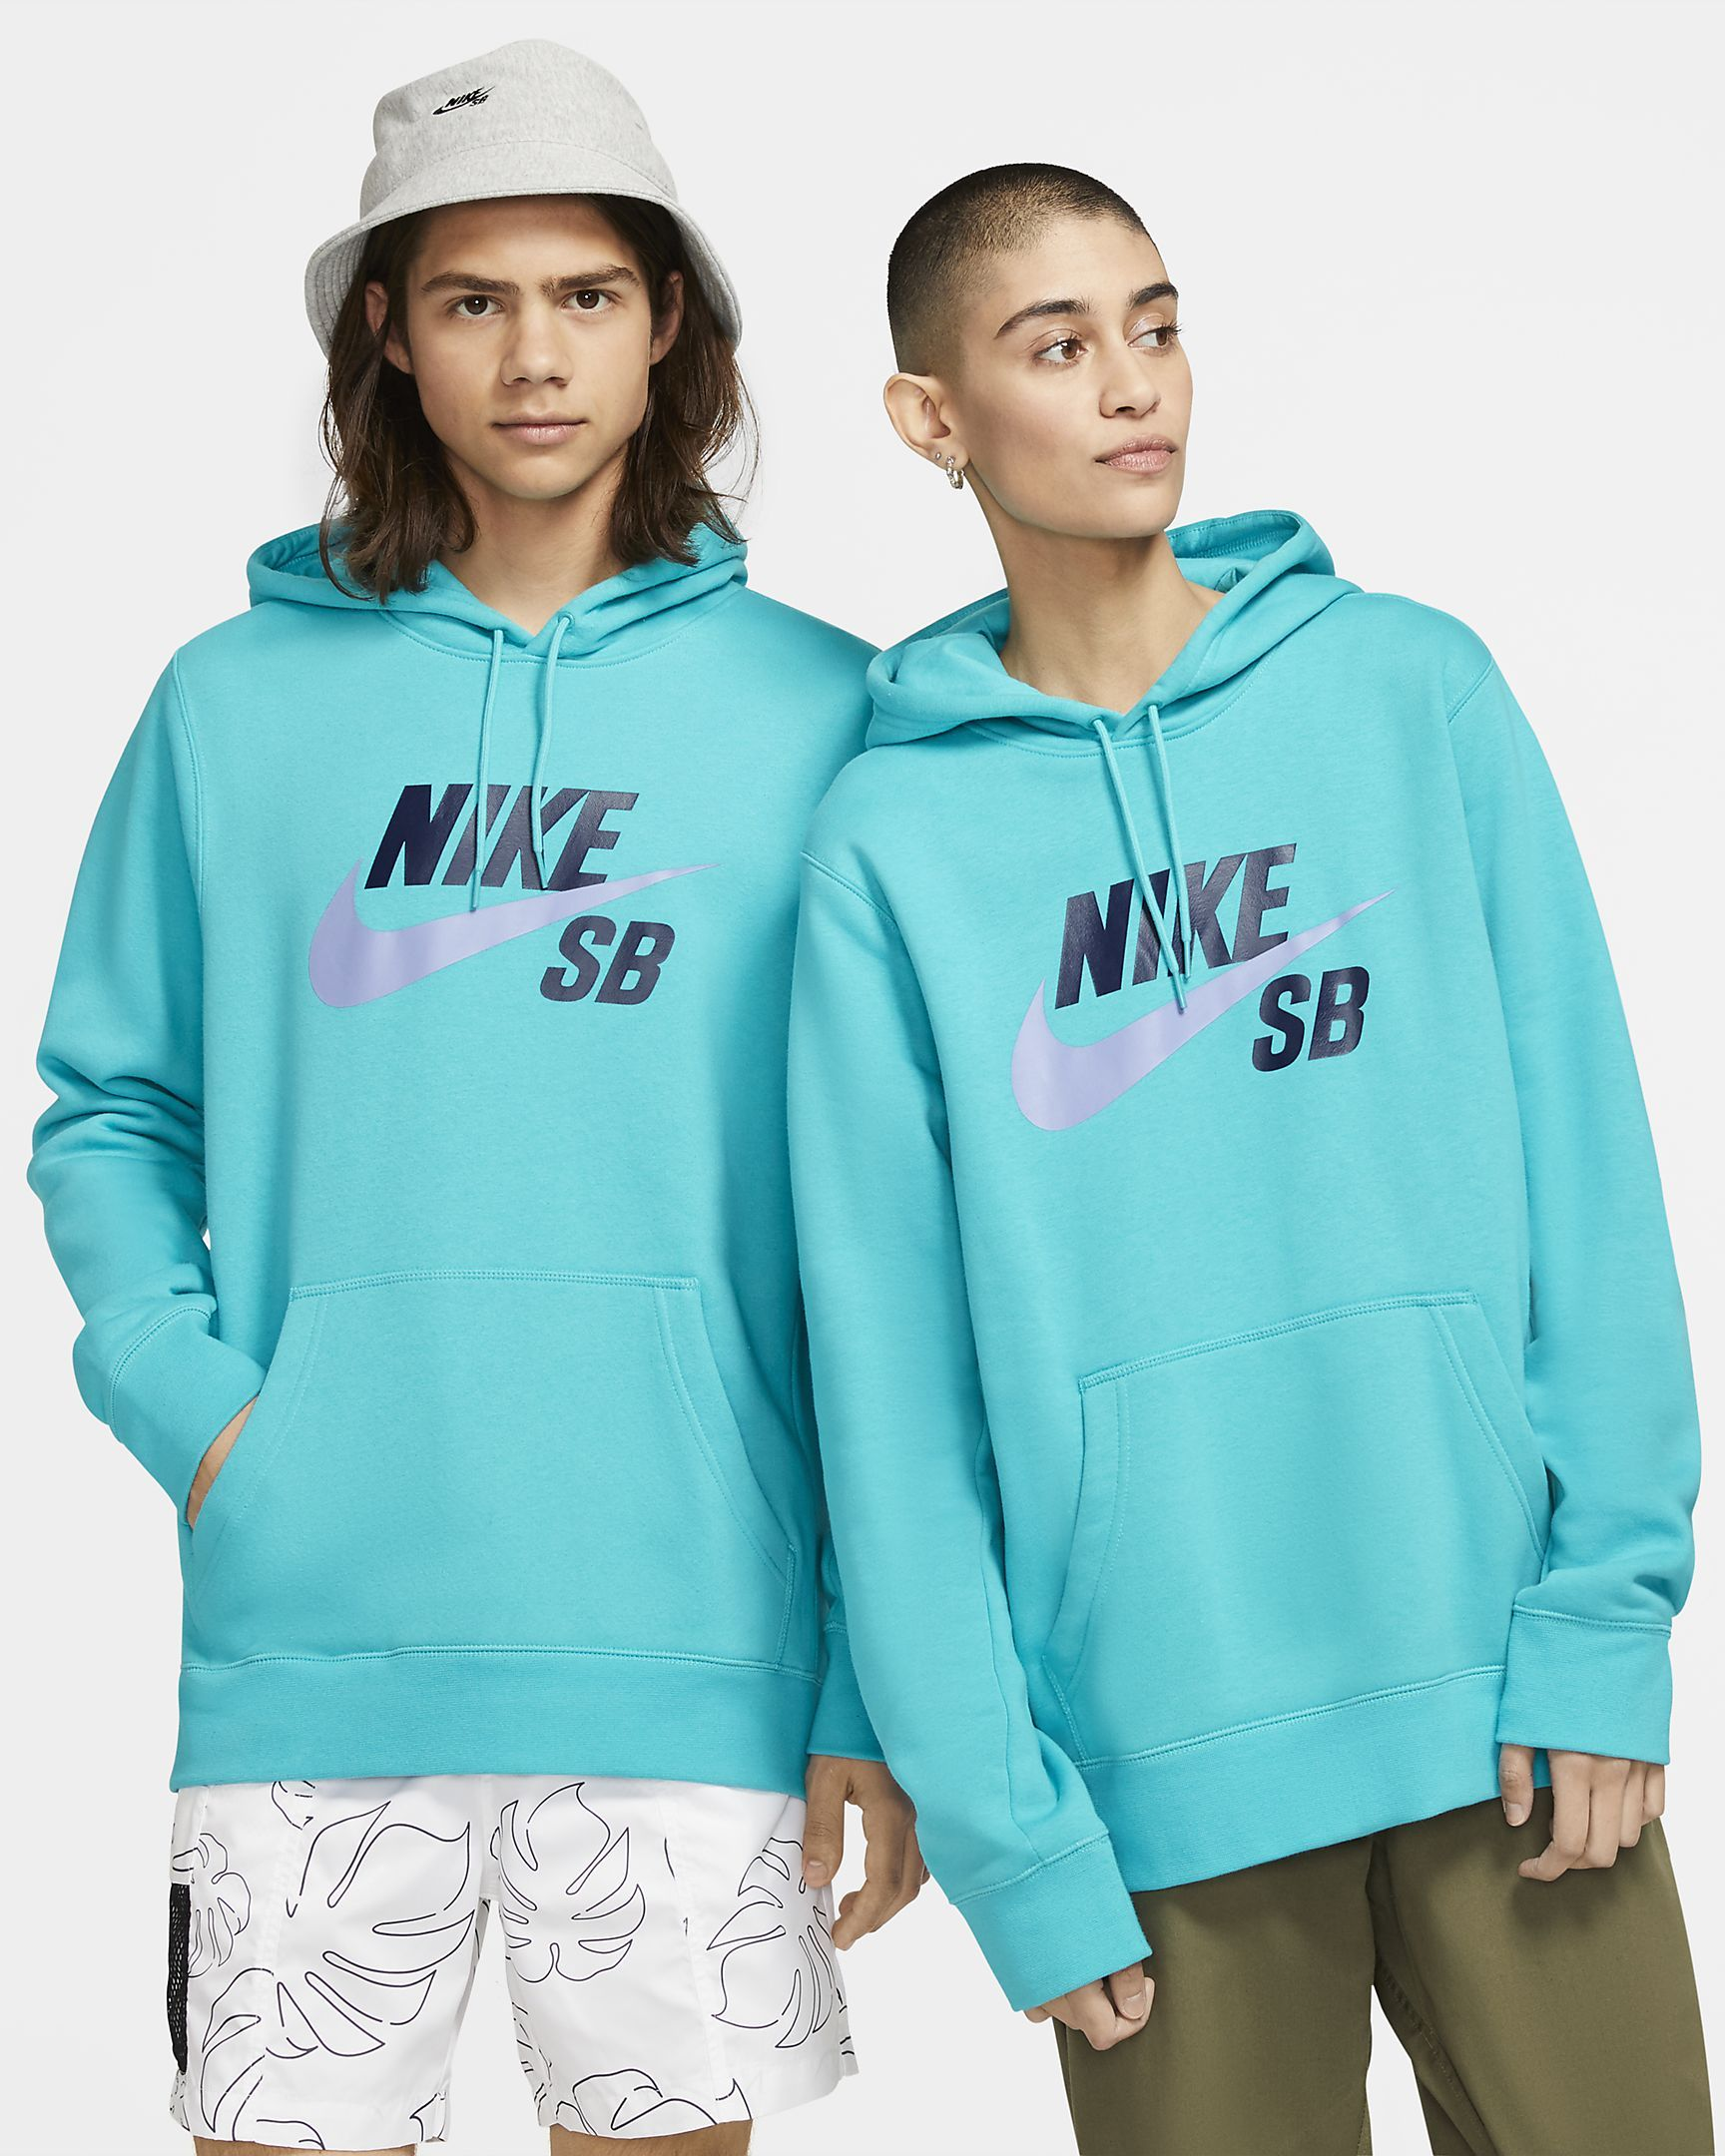 Nike Sb Icon Pullover Skate Hoodie Nike Com Tomboy Style Outfits Hoodies Pullover [ 2160 x 1728 Pixel ]